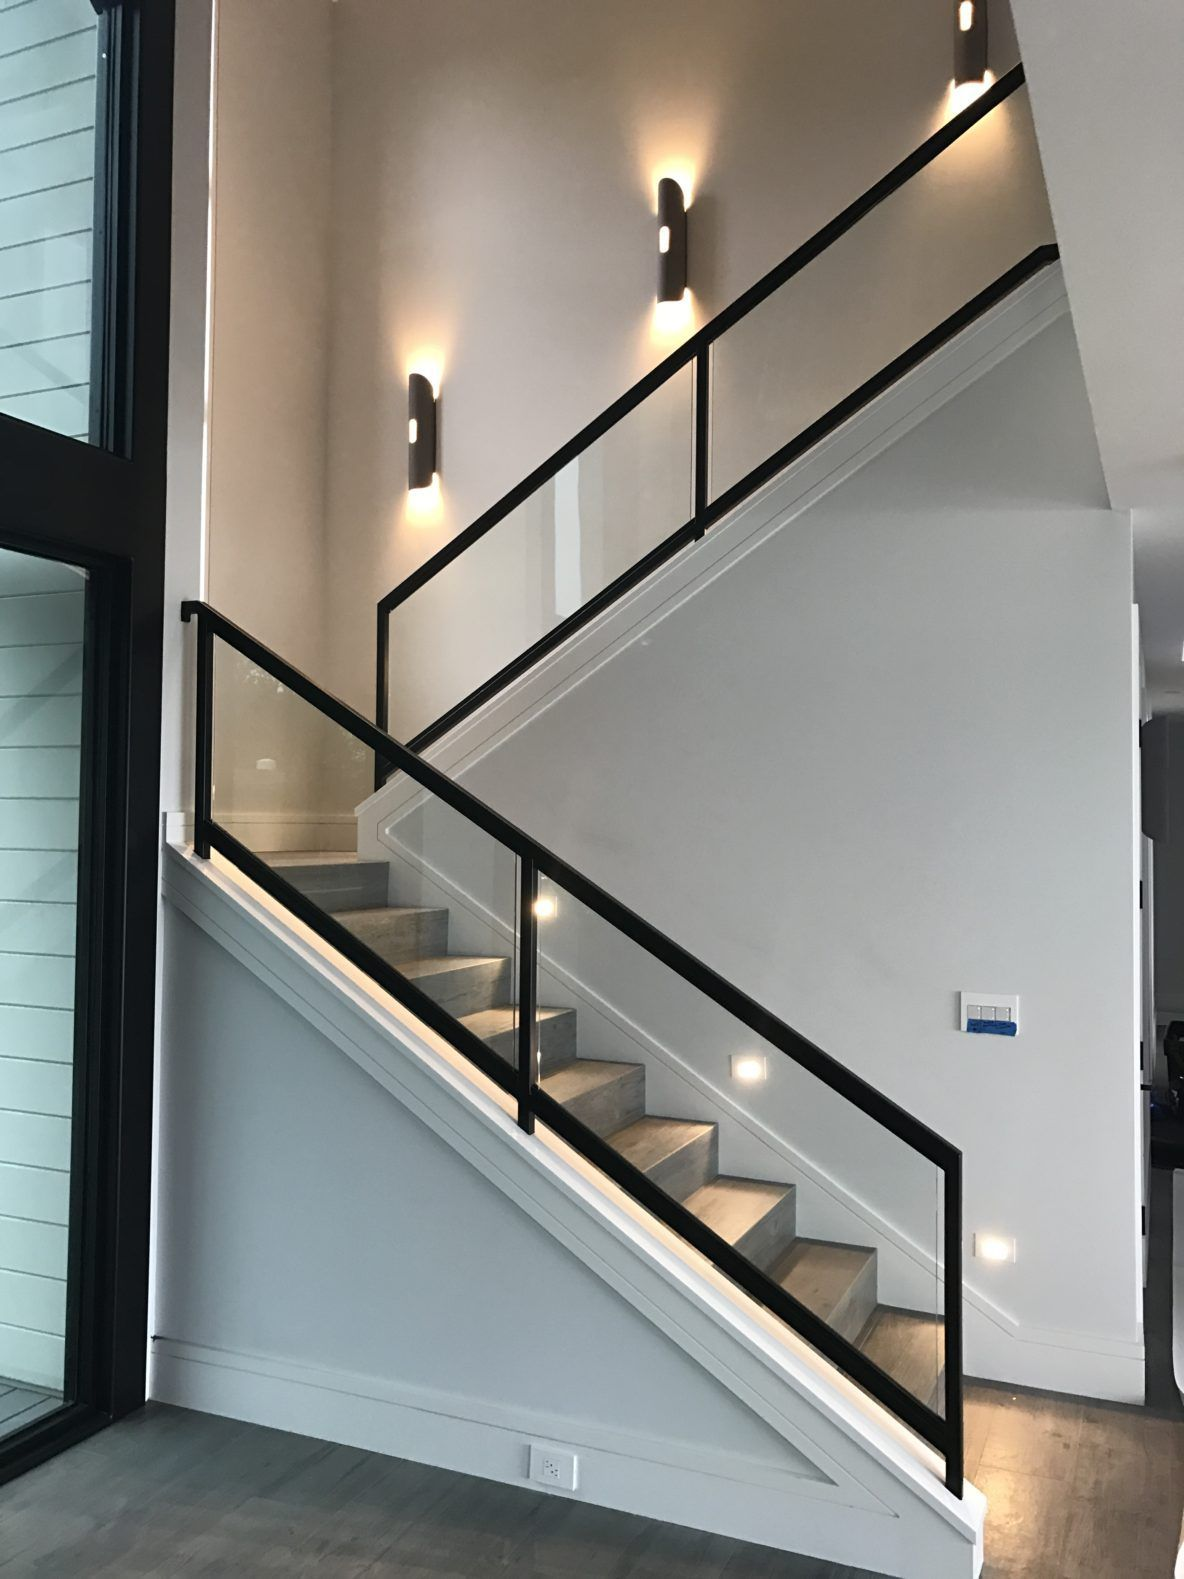 Best Steel And Wood Stairs With A Glass Handrail Lead Up To The 400 x 300